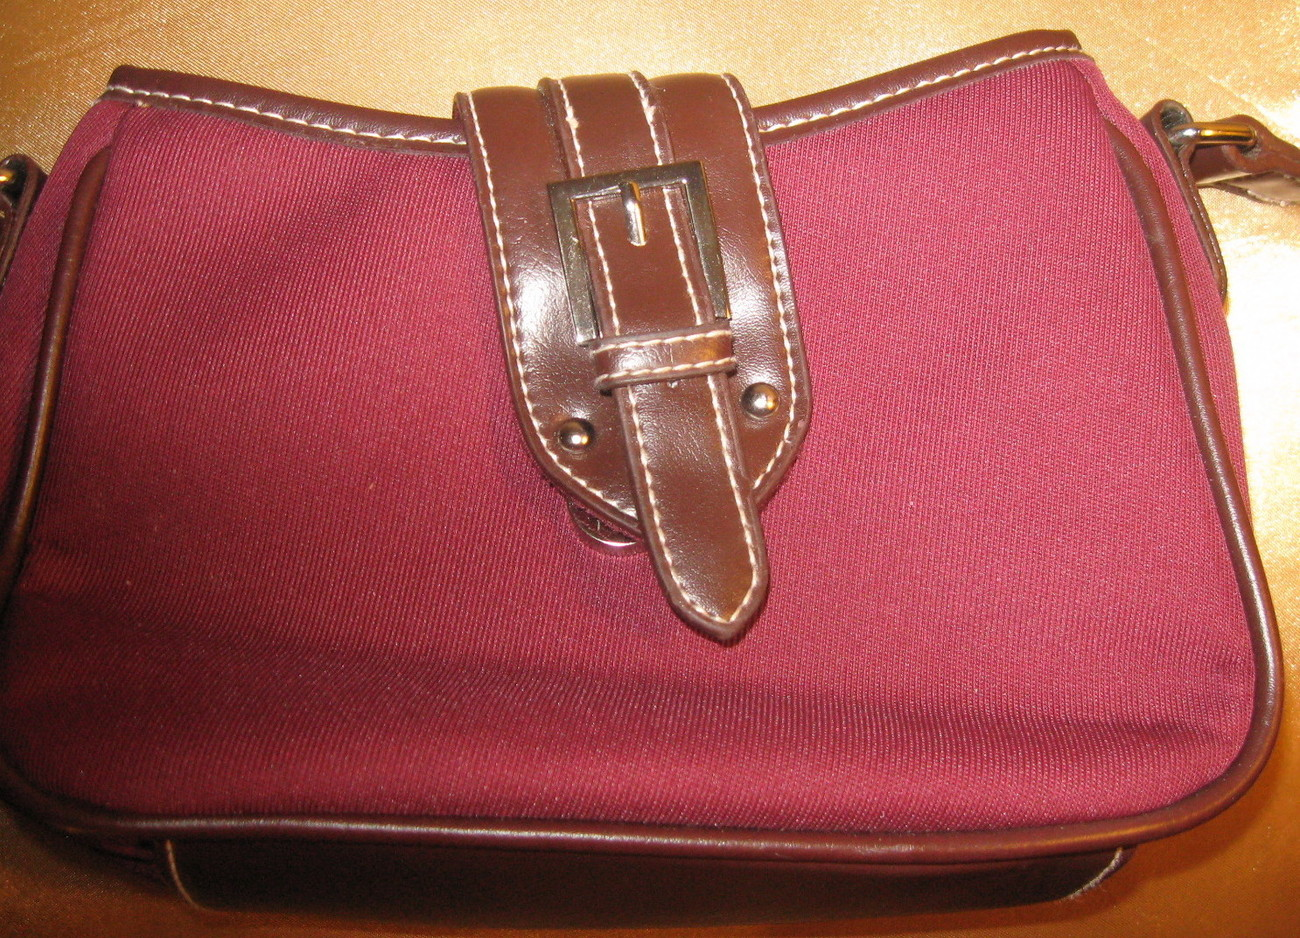 PURSE & MATCHING CHANGE PURSE, BURGUNDY, SHOULDER STRAP, ZIPPERED COMPARTMENTS